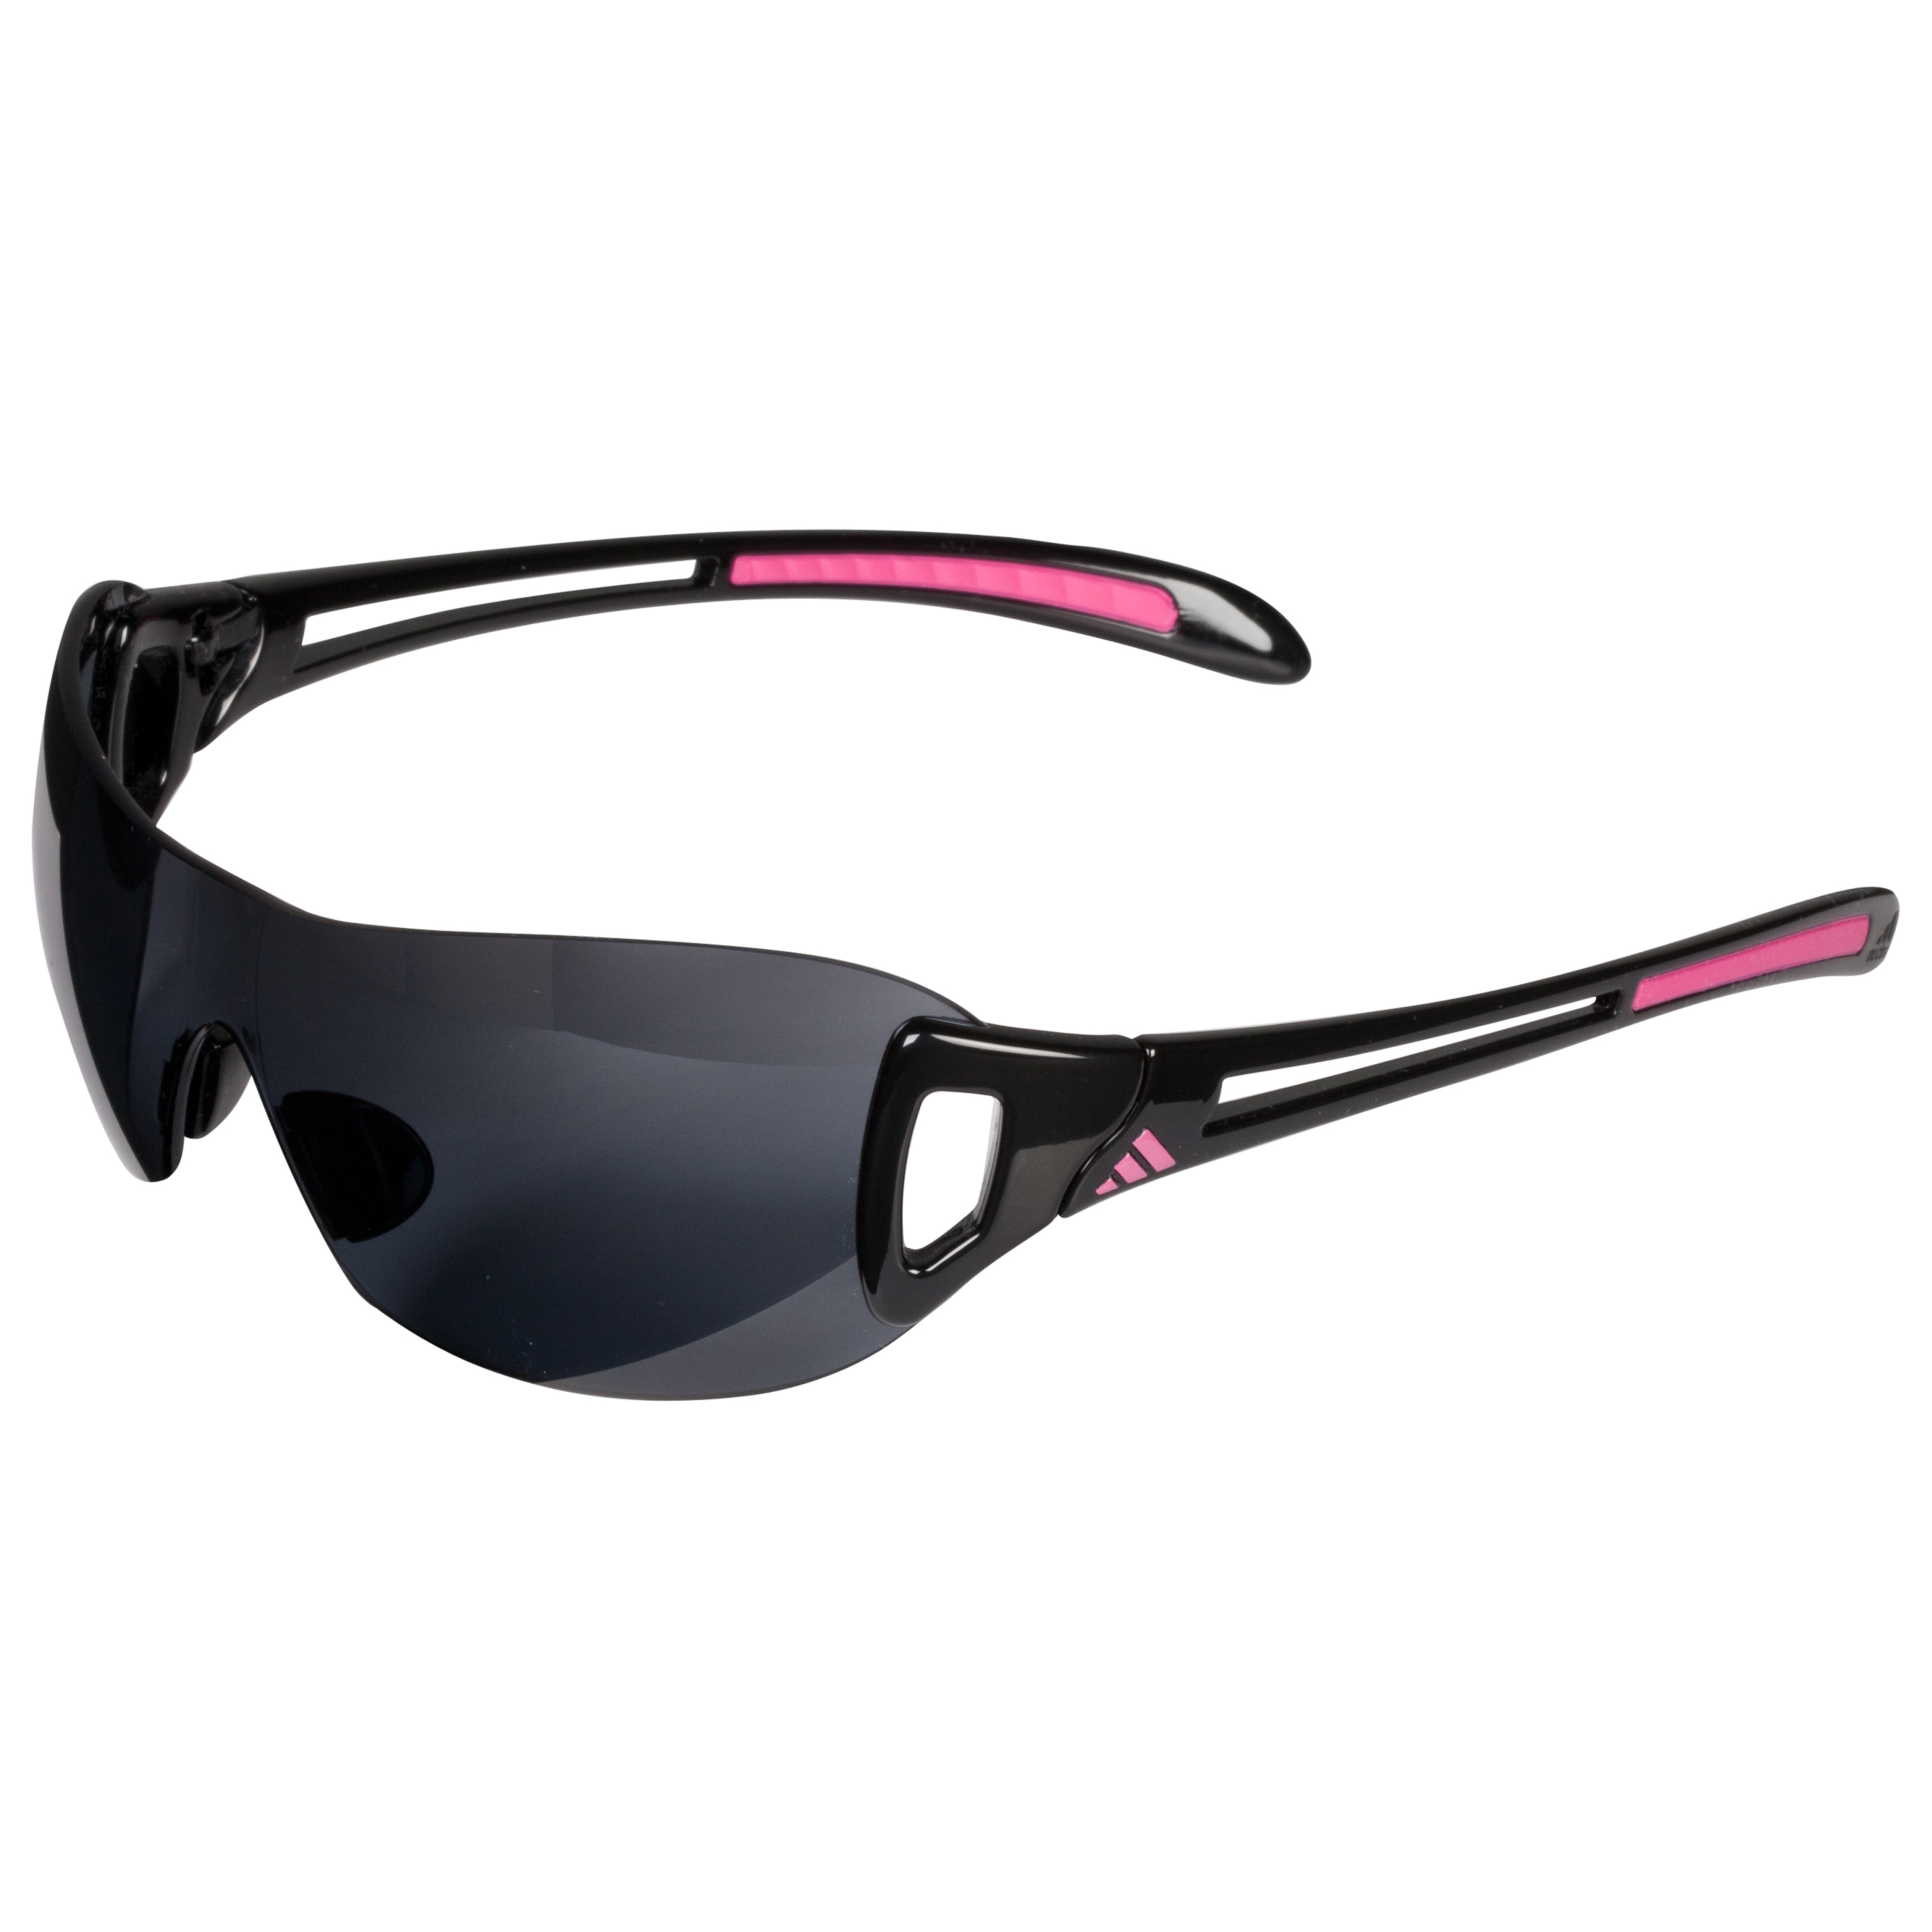 Adidas Adilibria Shield Sunglasses - Pink